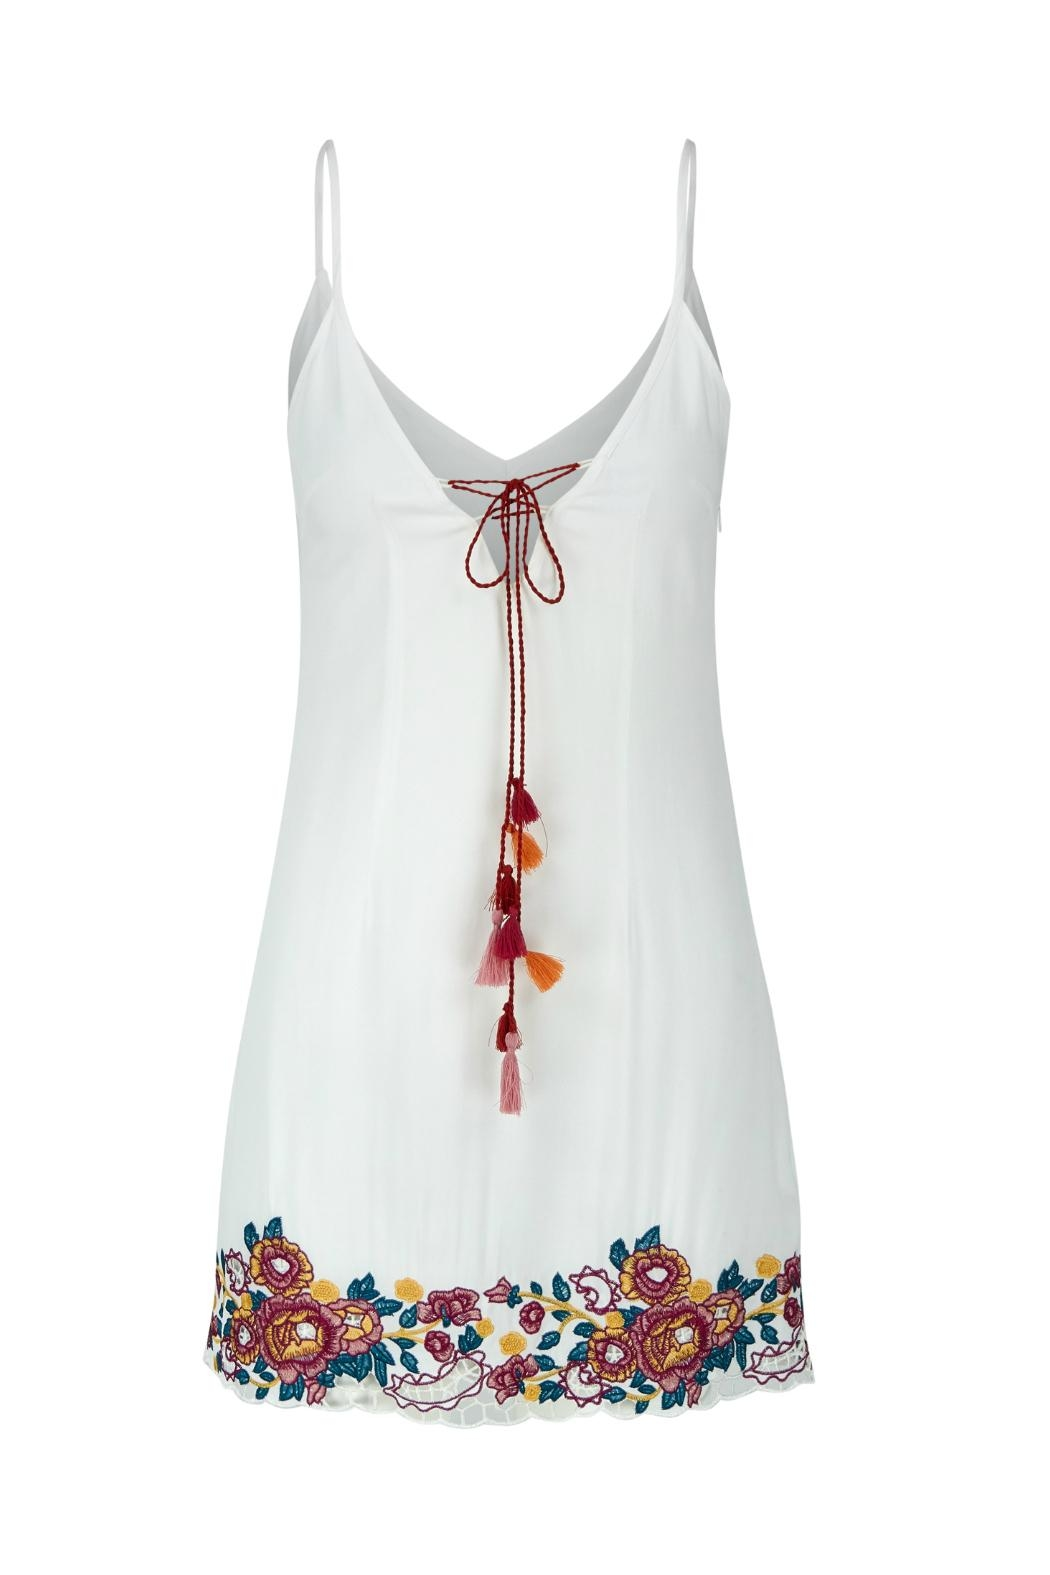 Bishop + Young Embroidered Shift Dress - Main Image